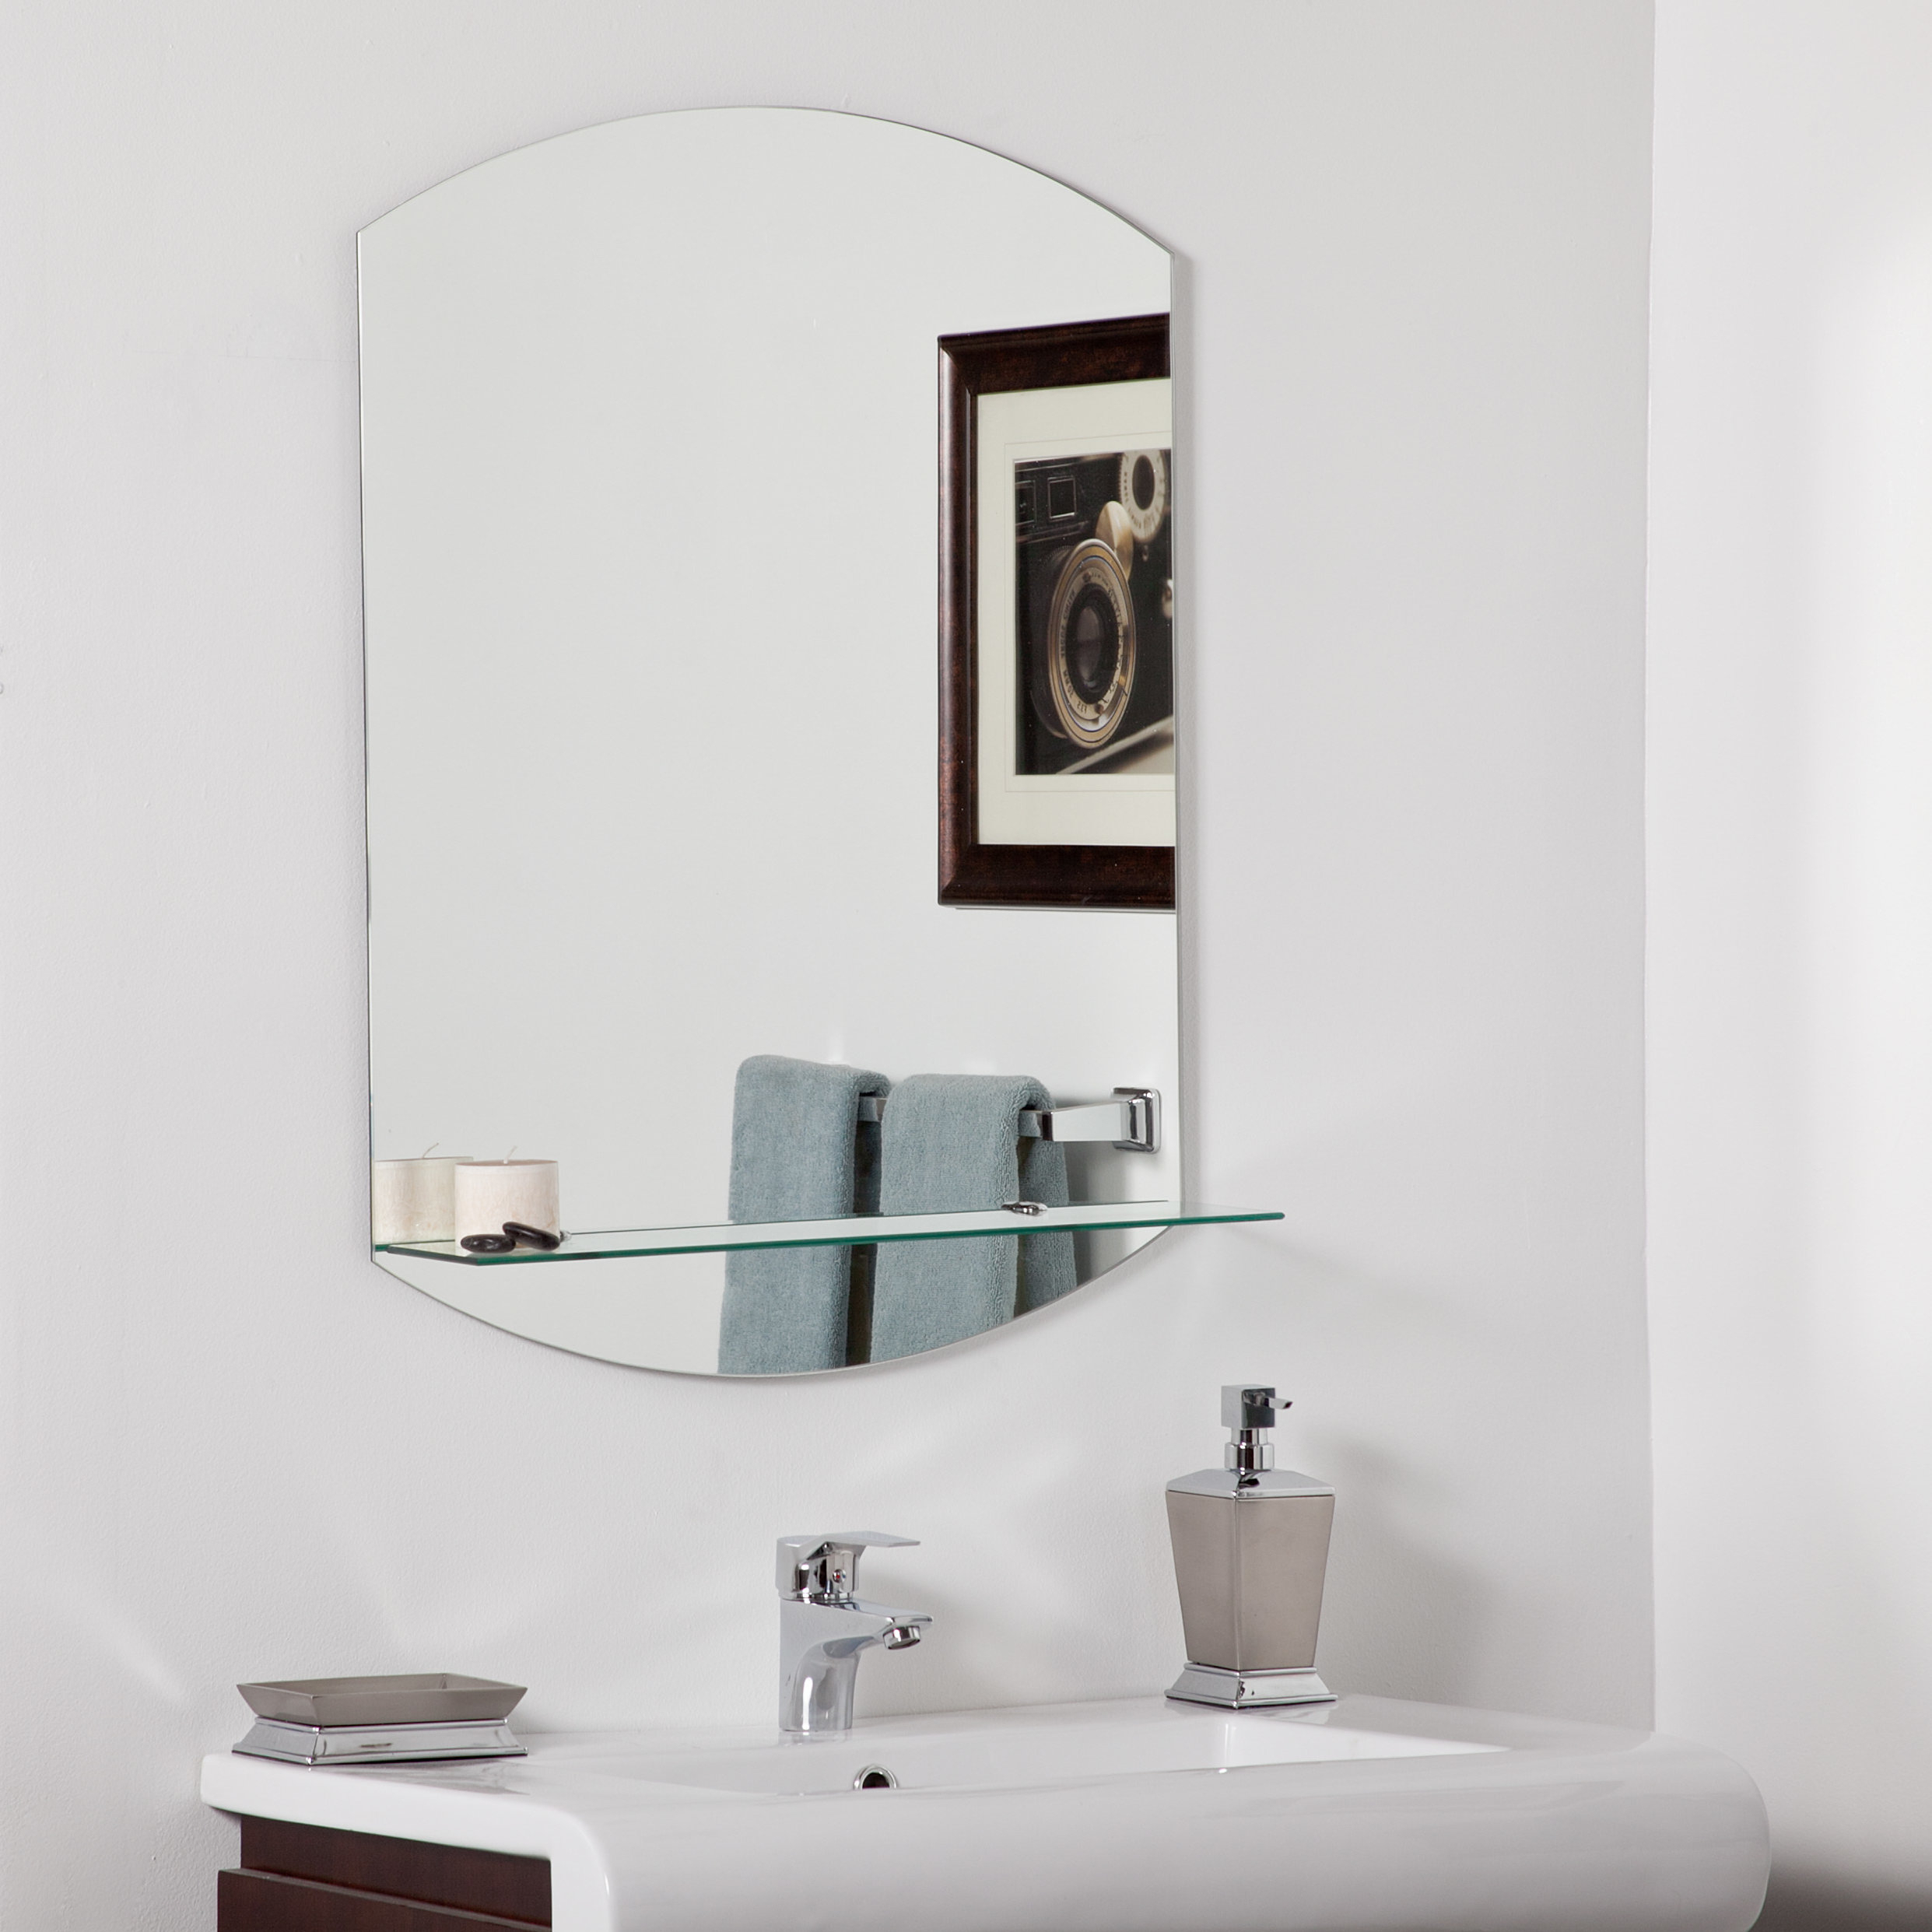 Farmhouse & Rustic Shelves / Drawers Wall & Accent Mirrors Inside Hallas Wall Organizer Mirrors (Image 5 of 20)